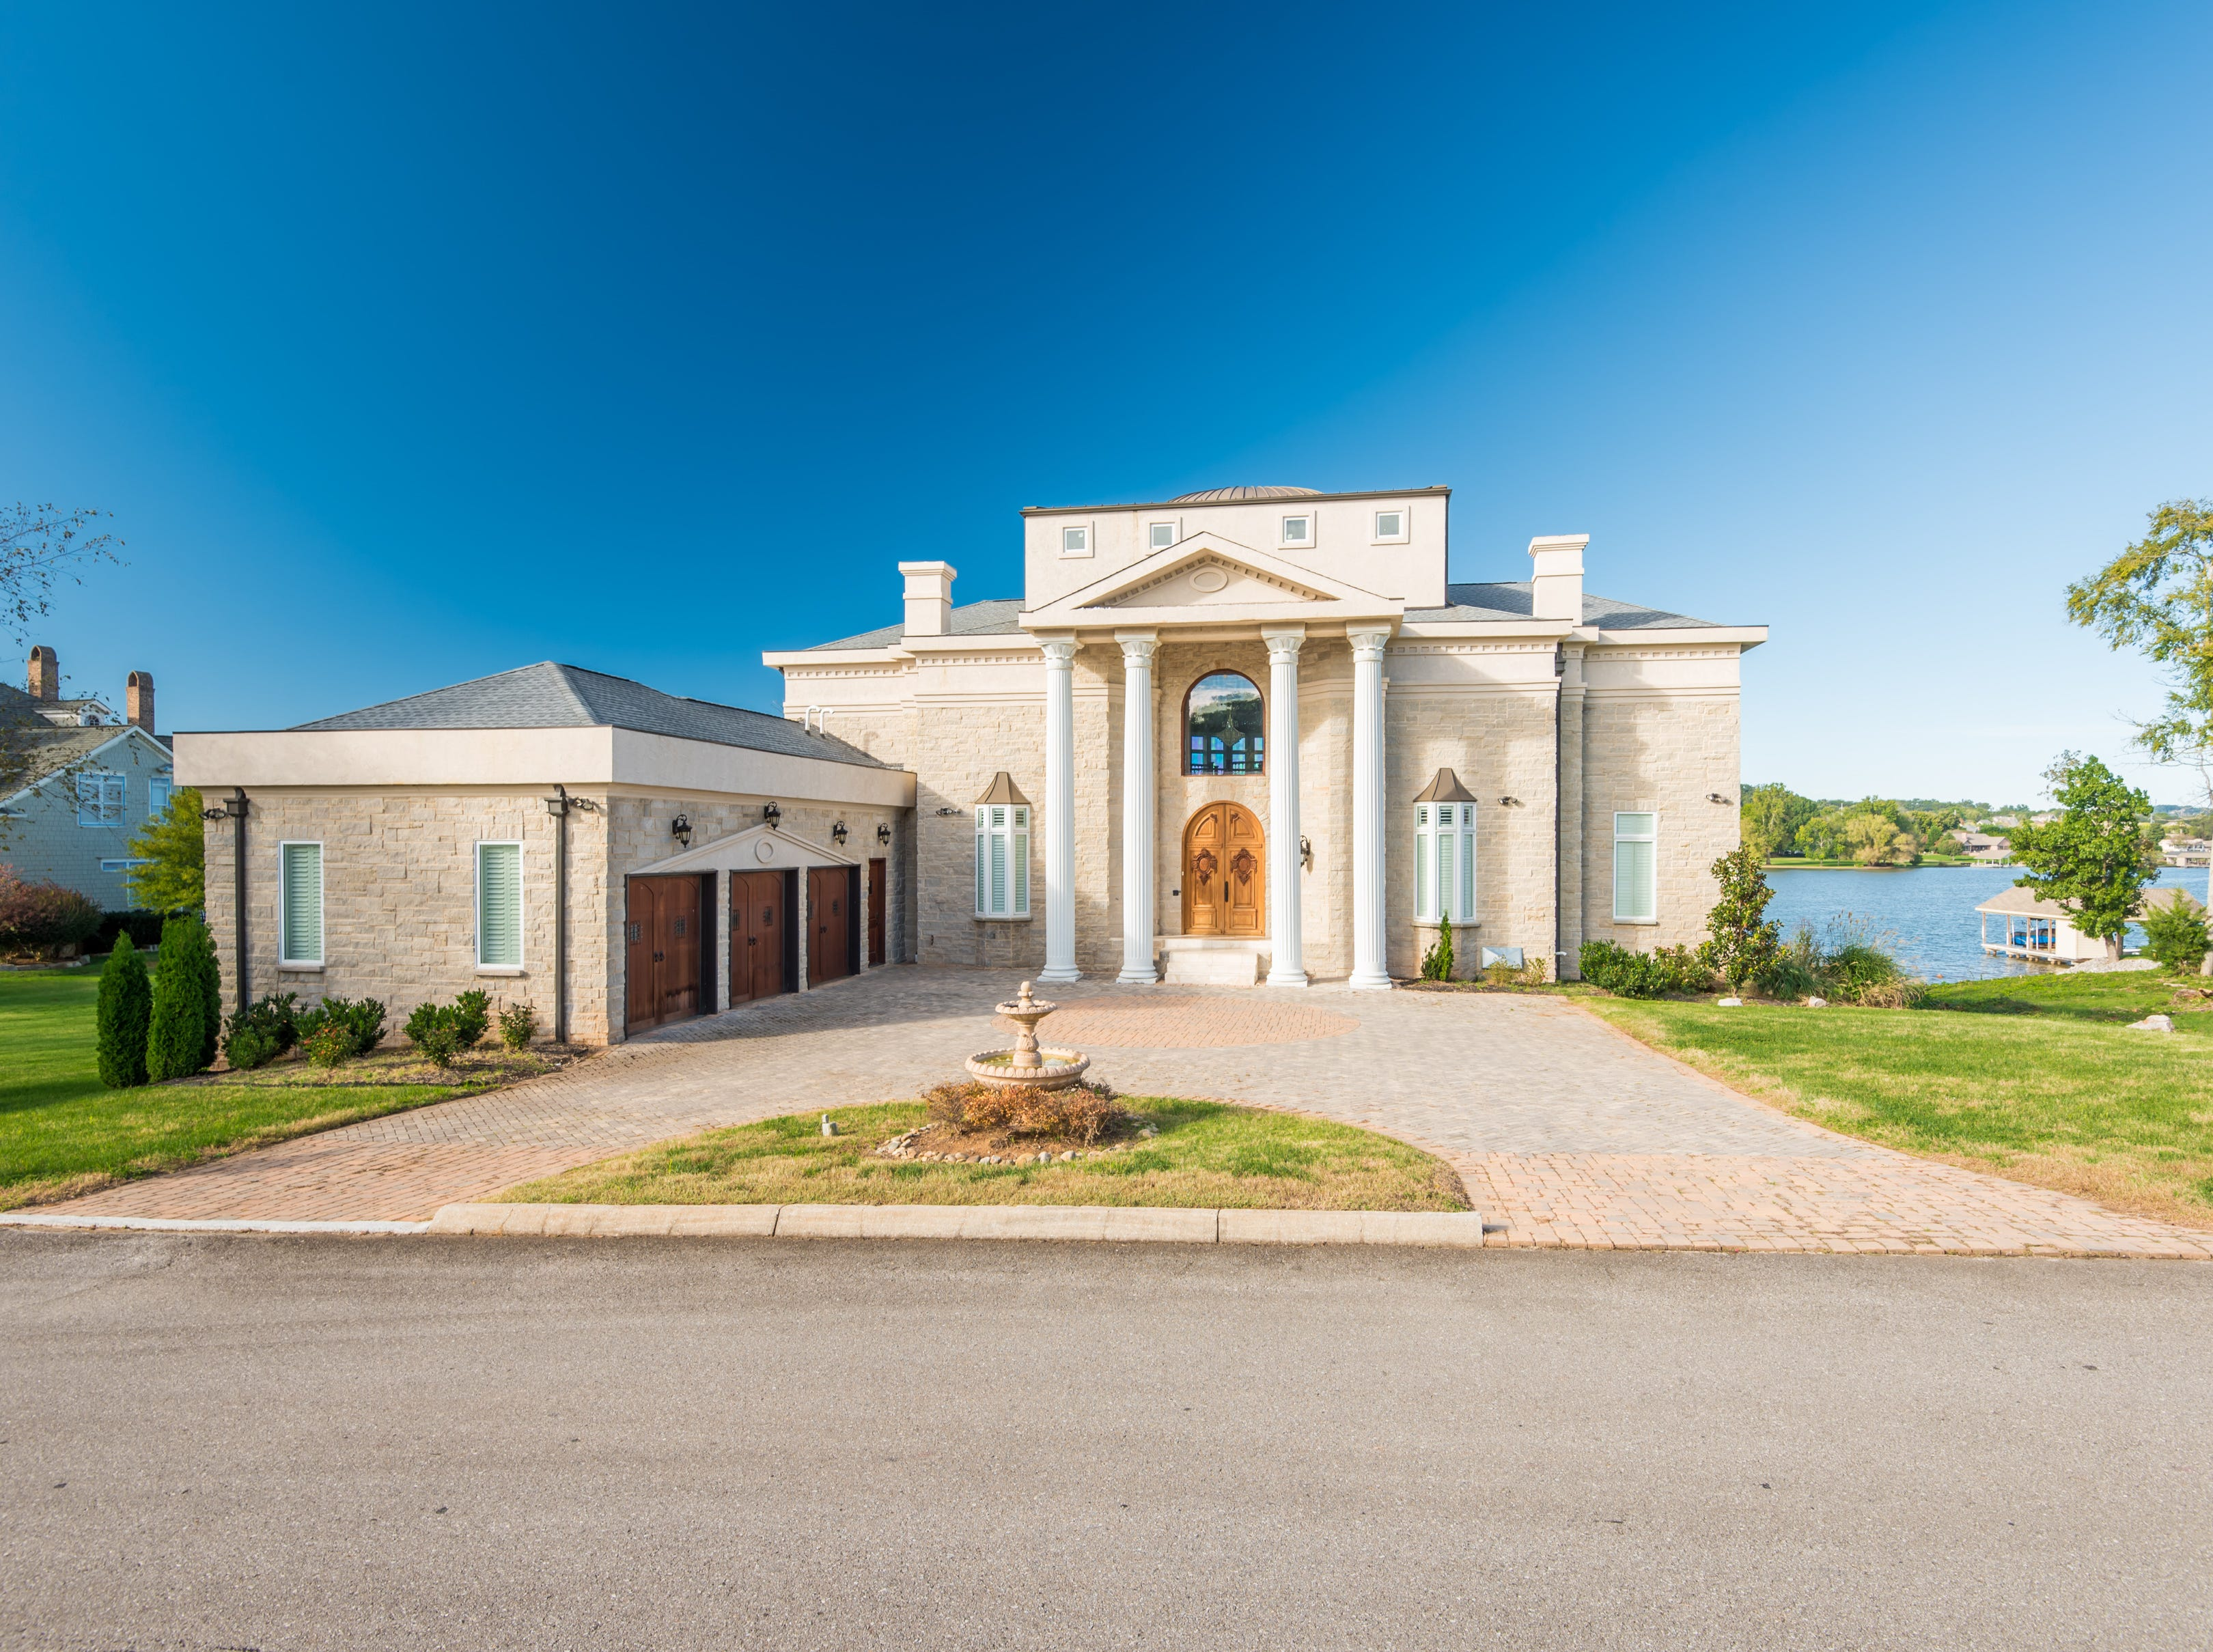 With one-of-a-kind design, 1439 Charlottesville Blvd in Farragut is listed for $1,995,000.